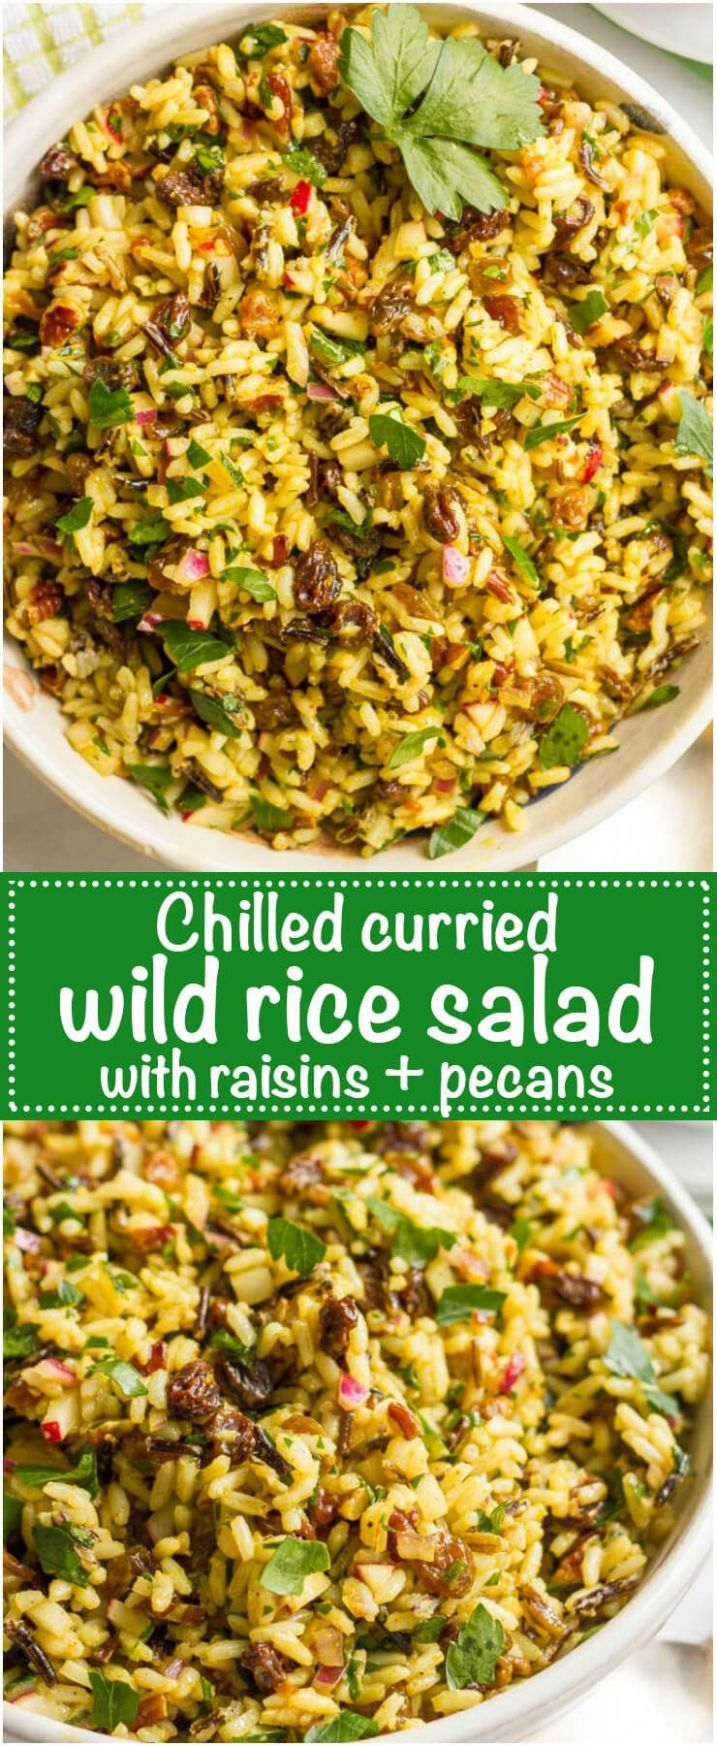 Curried wild rice salad with raisins and pecans - Recipes Rice Salad Cold